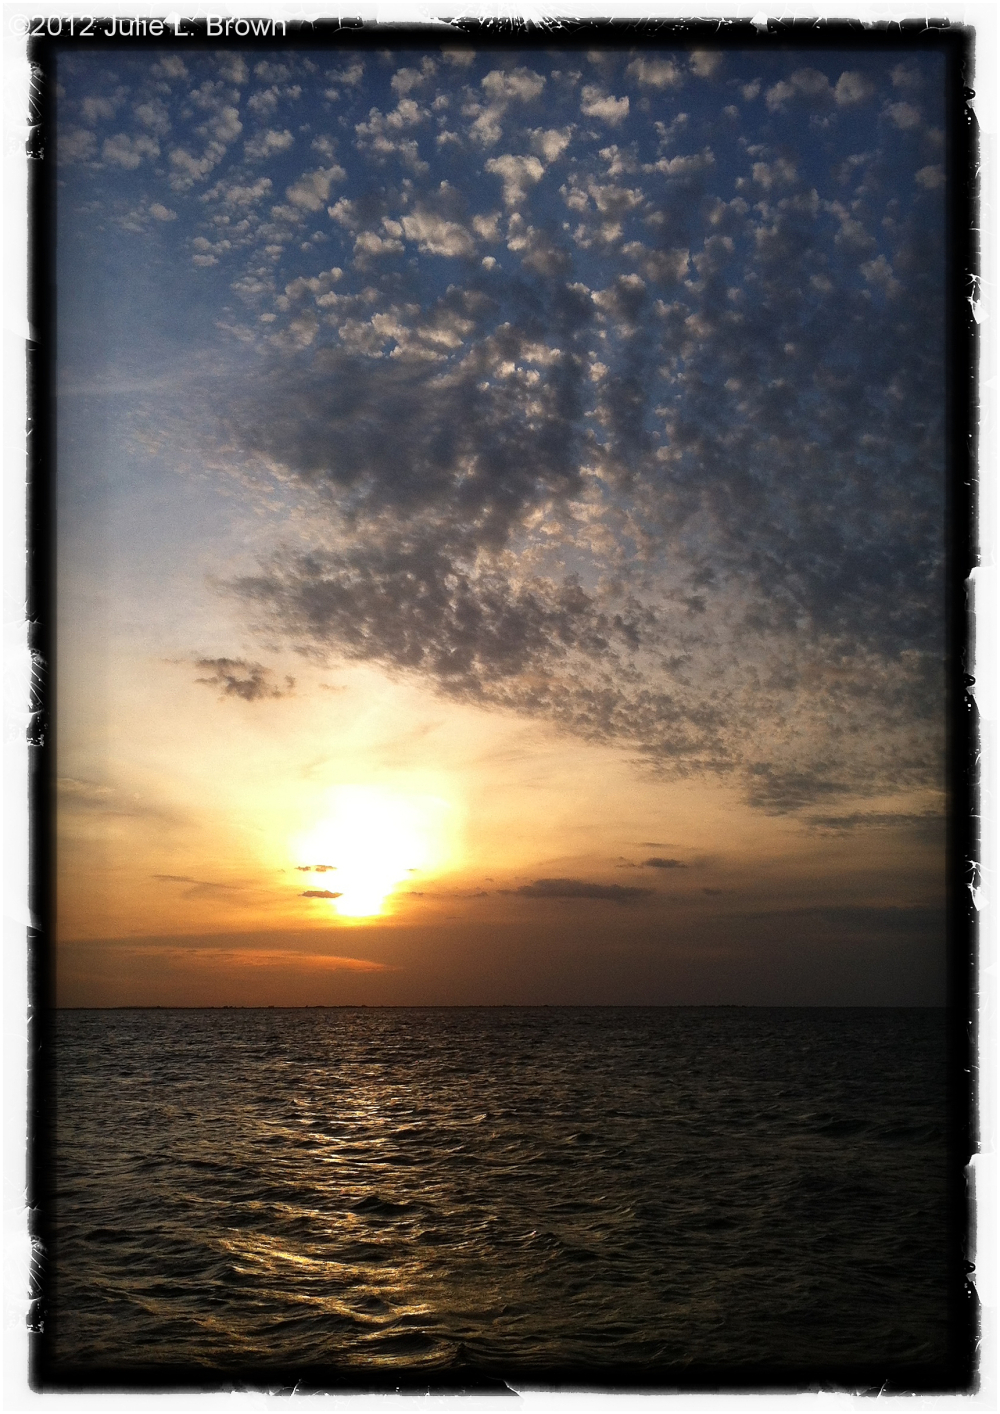 iphone landscape sunset-lake-okeechobee florida